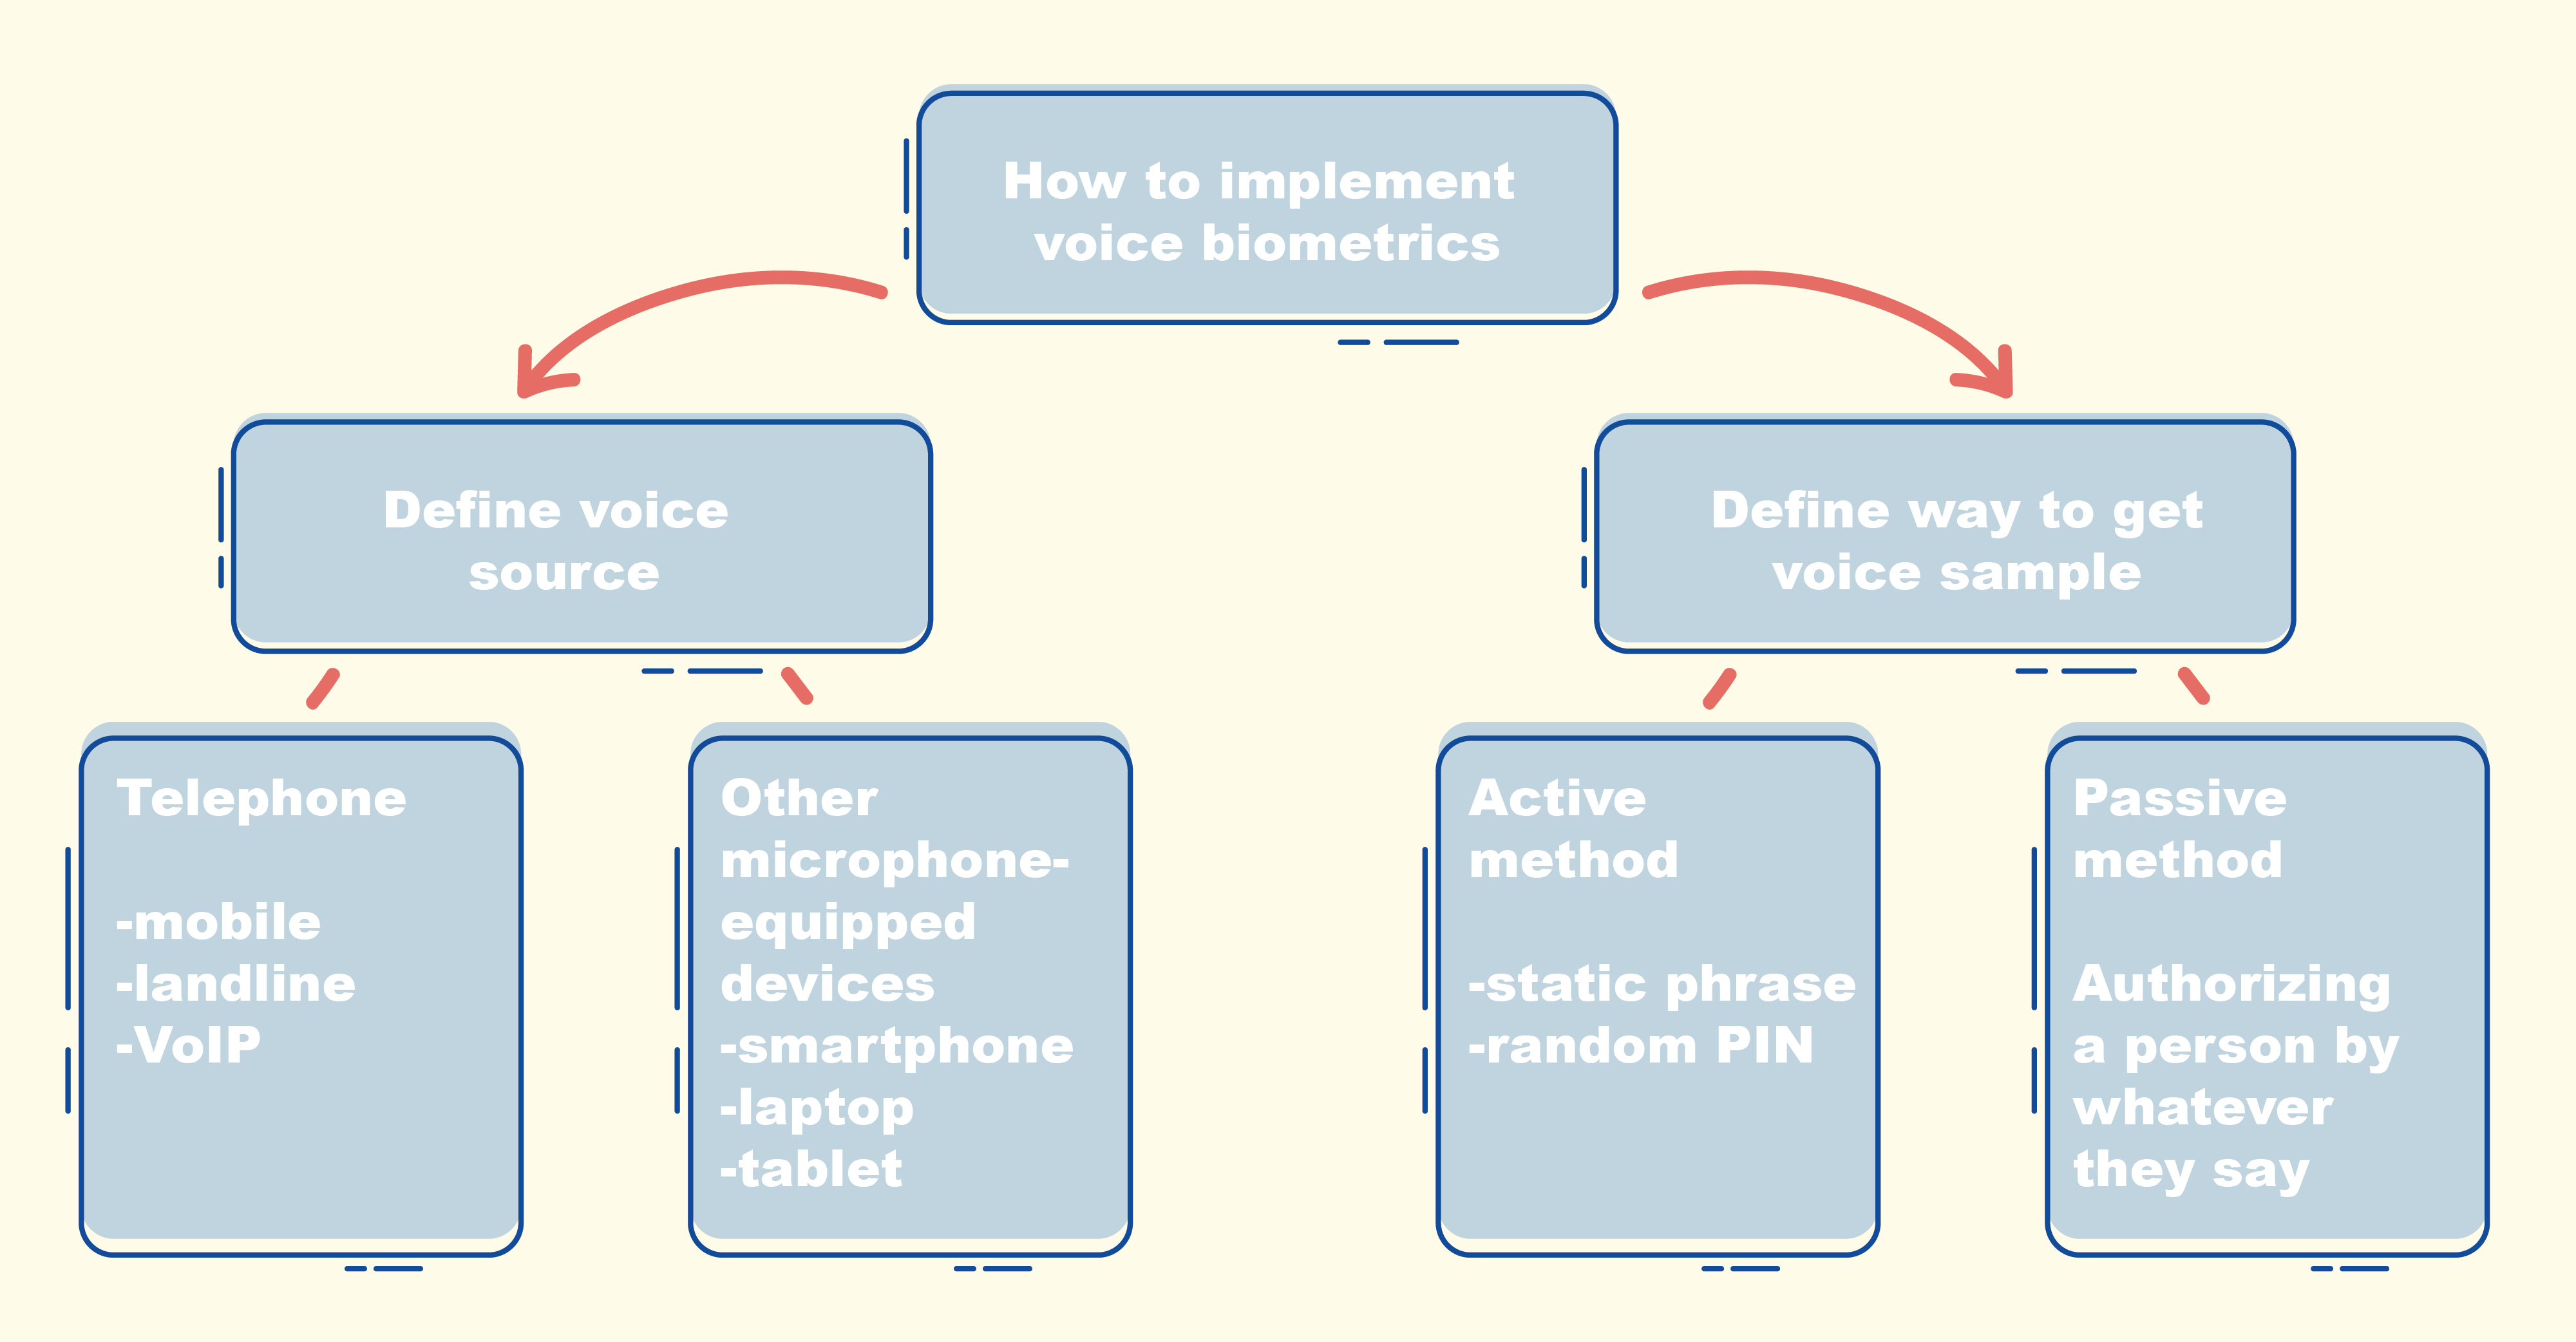 Strps to implement voice biometrics